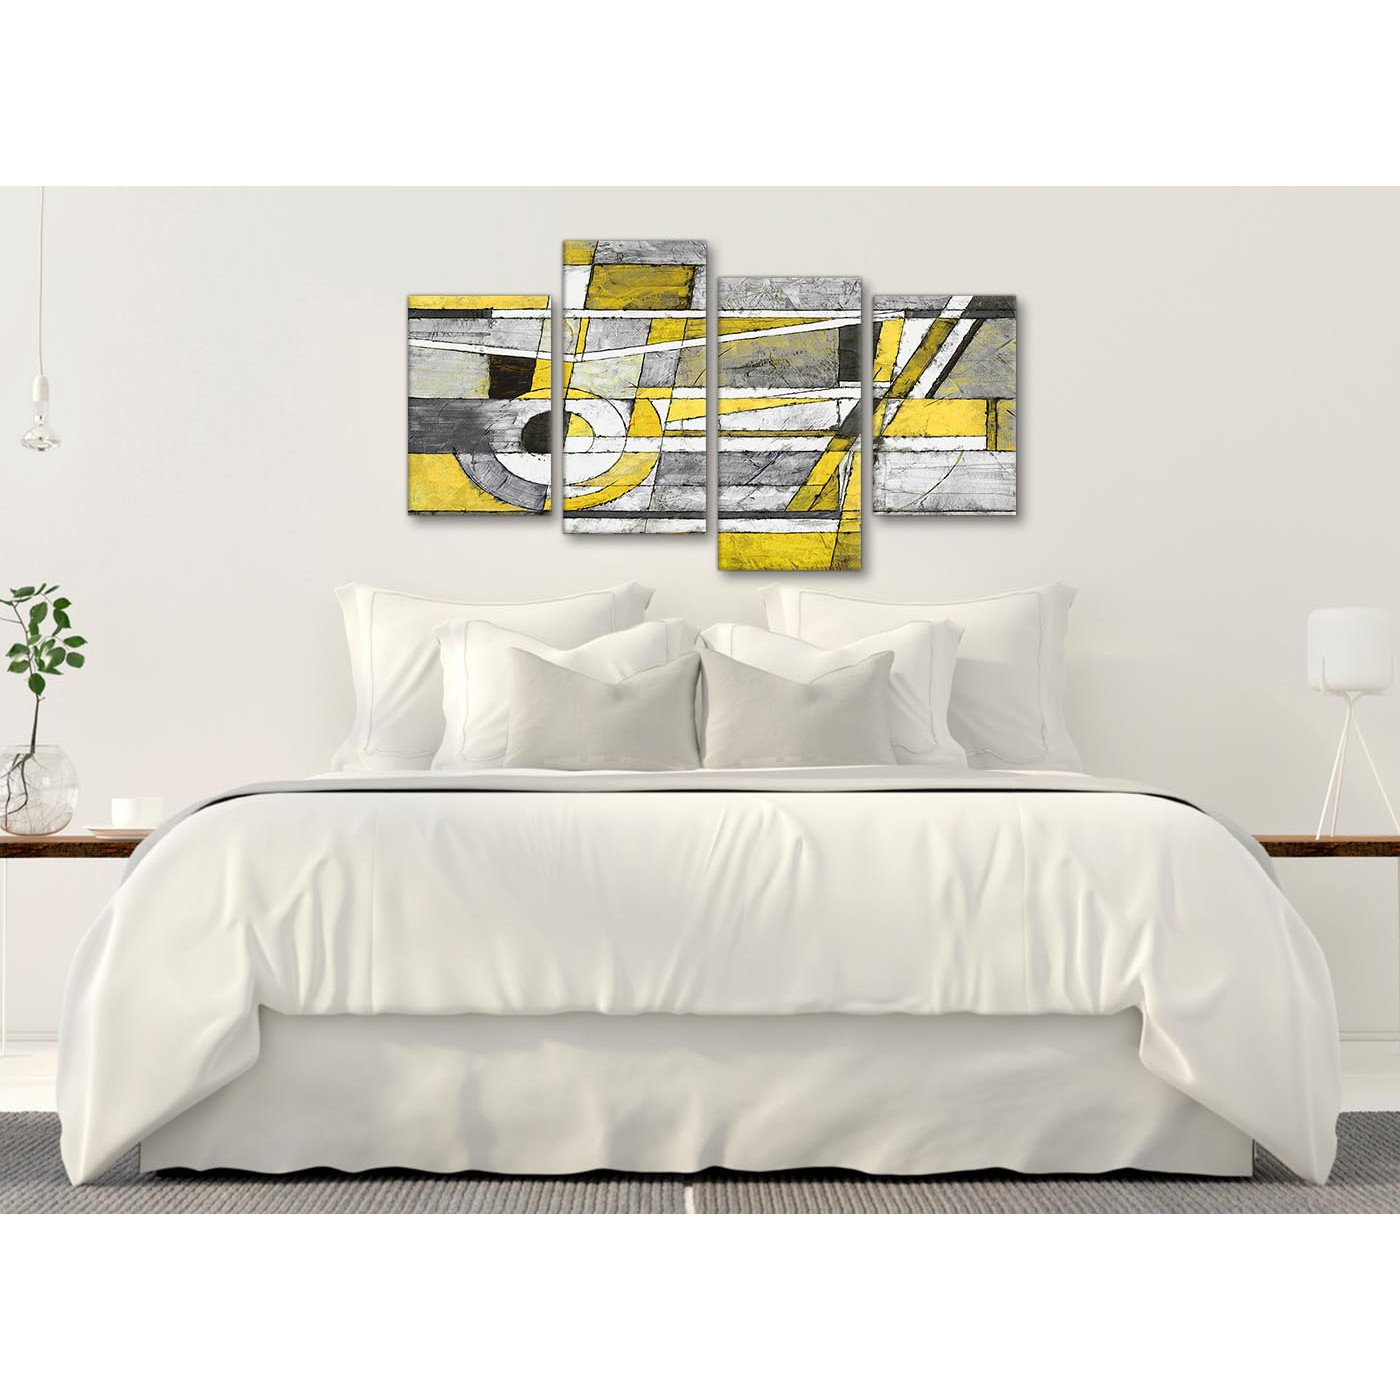 Display Gallery Item 3; Modern Large Yellow Grey Painting Abstract Bedroom  Canvas Wall Art Decor - 4400 - 130cm Set Display Gallery Item 4 ...